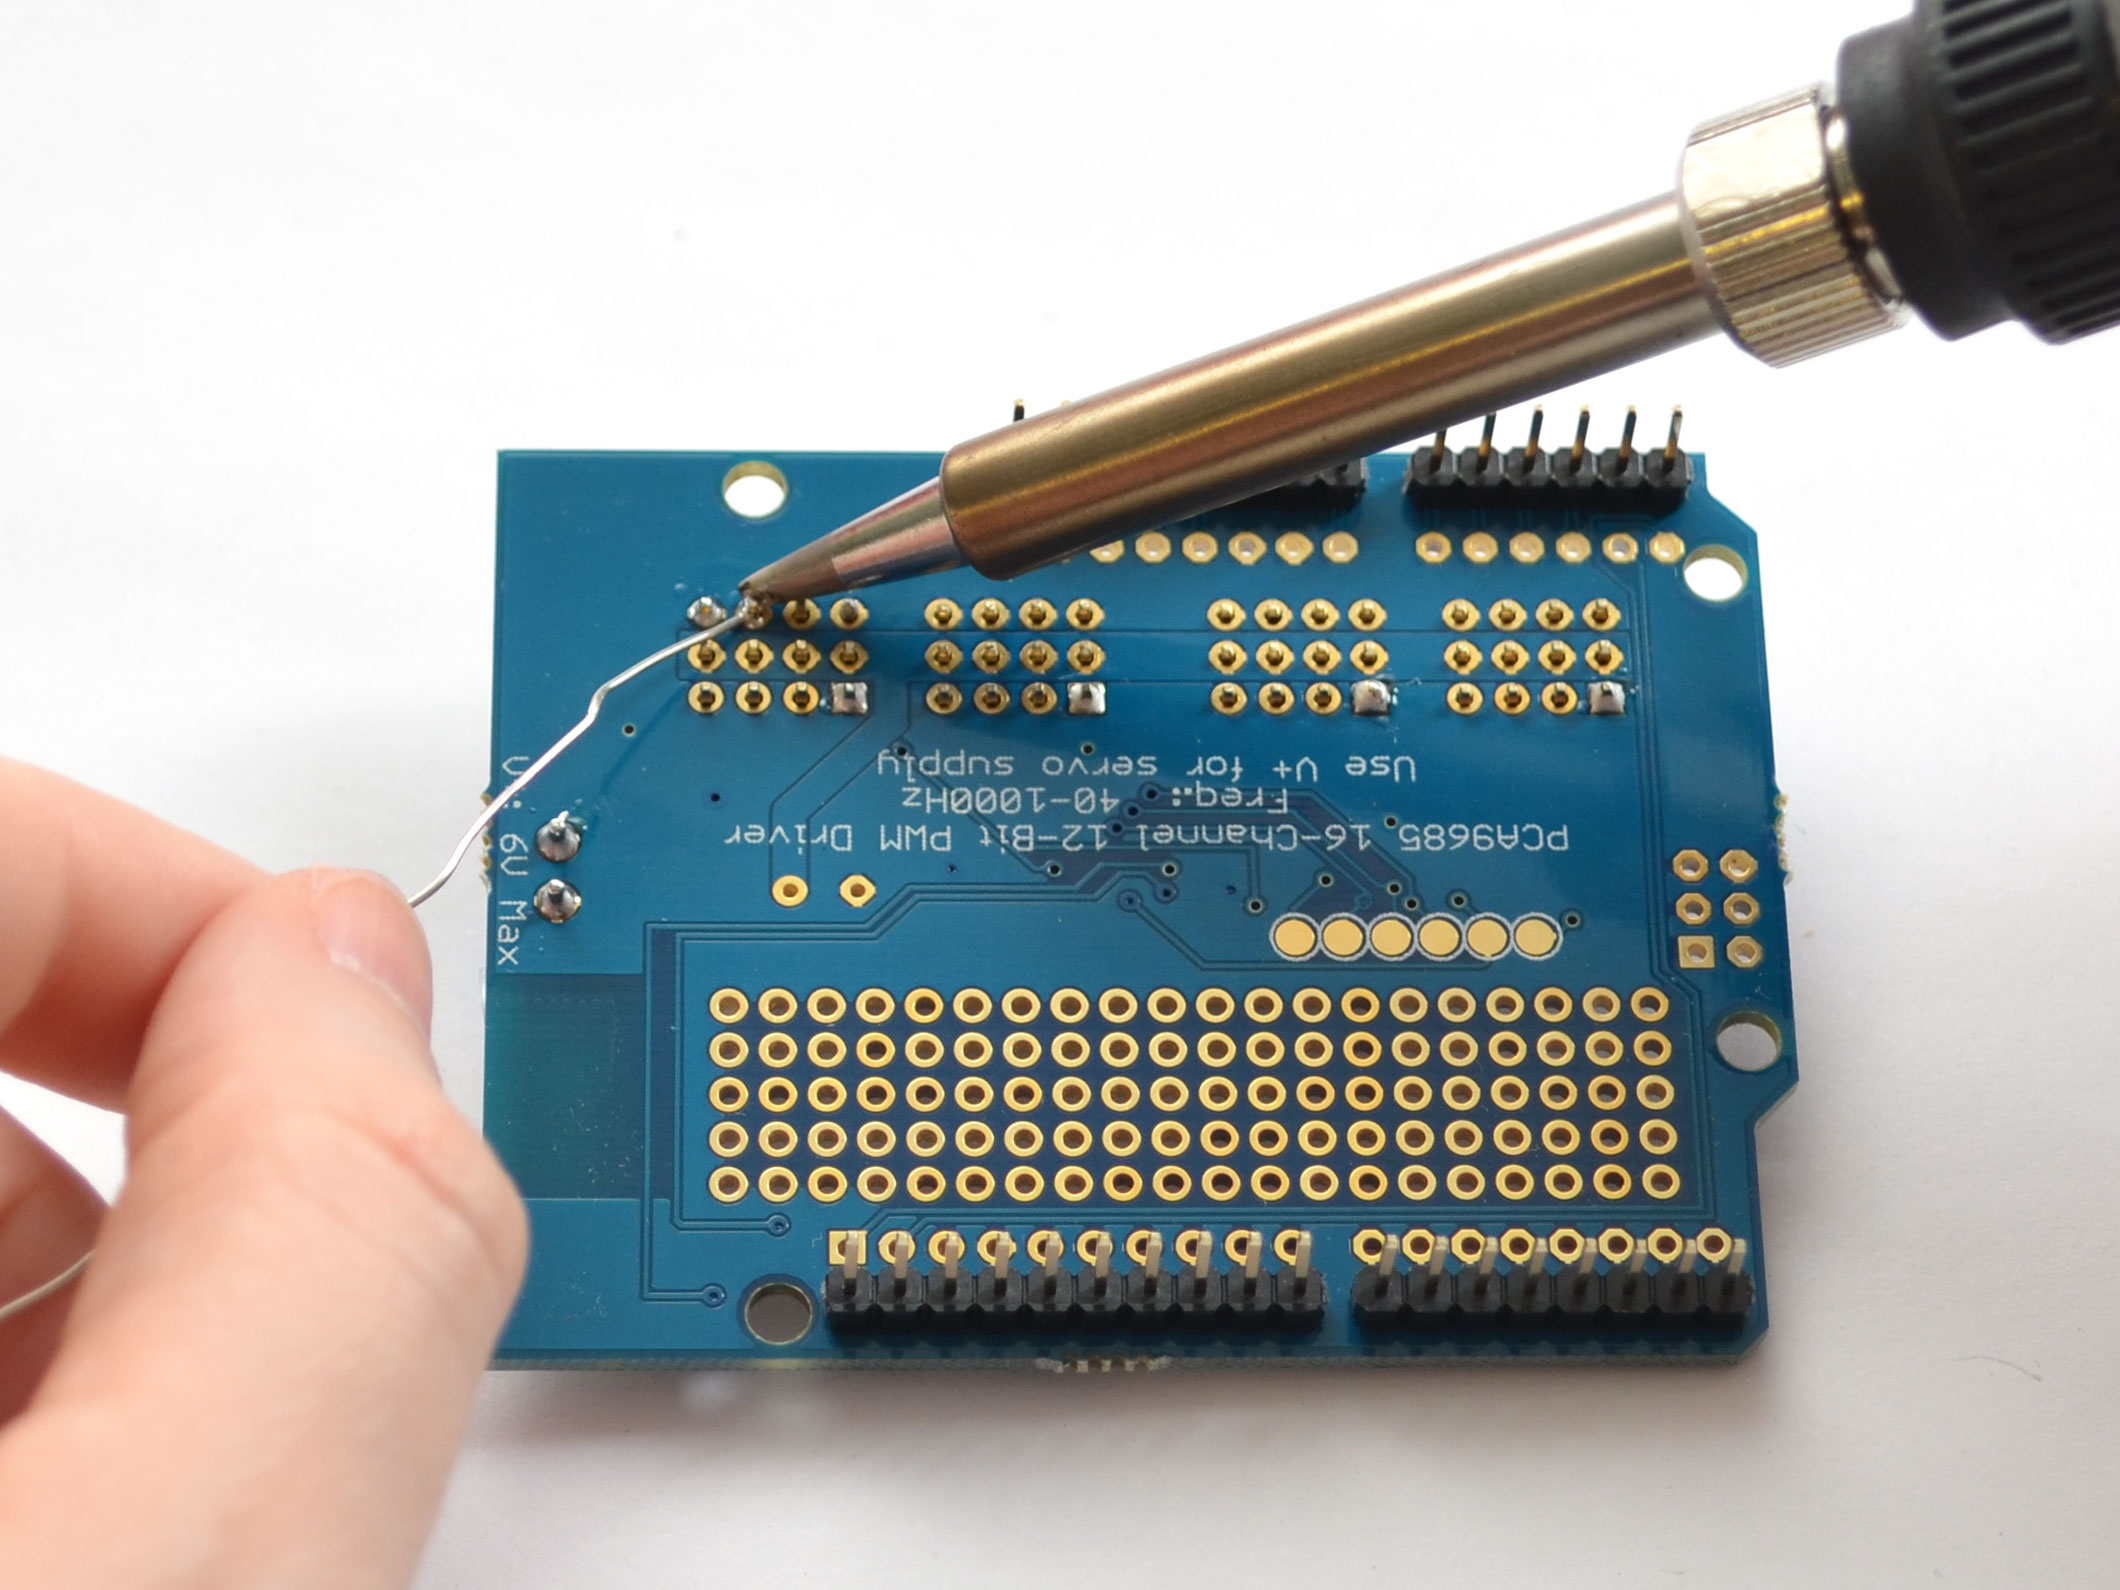 adafruit_products_solder3x4.jpg